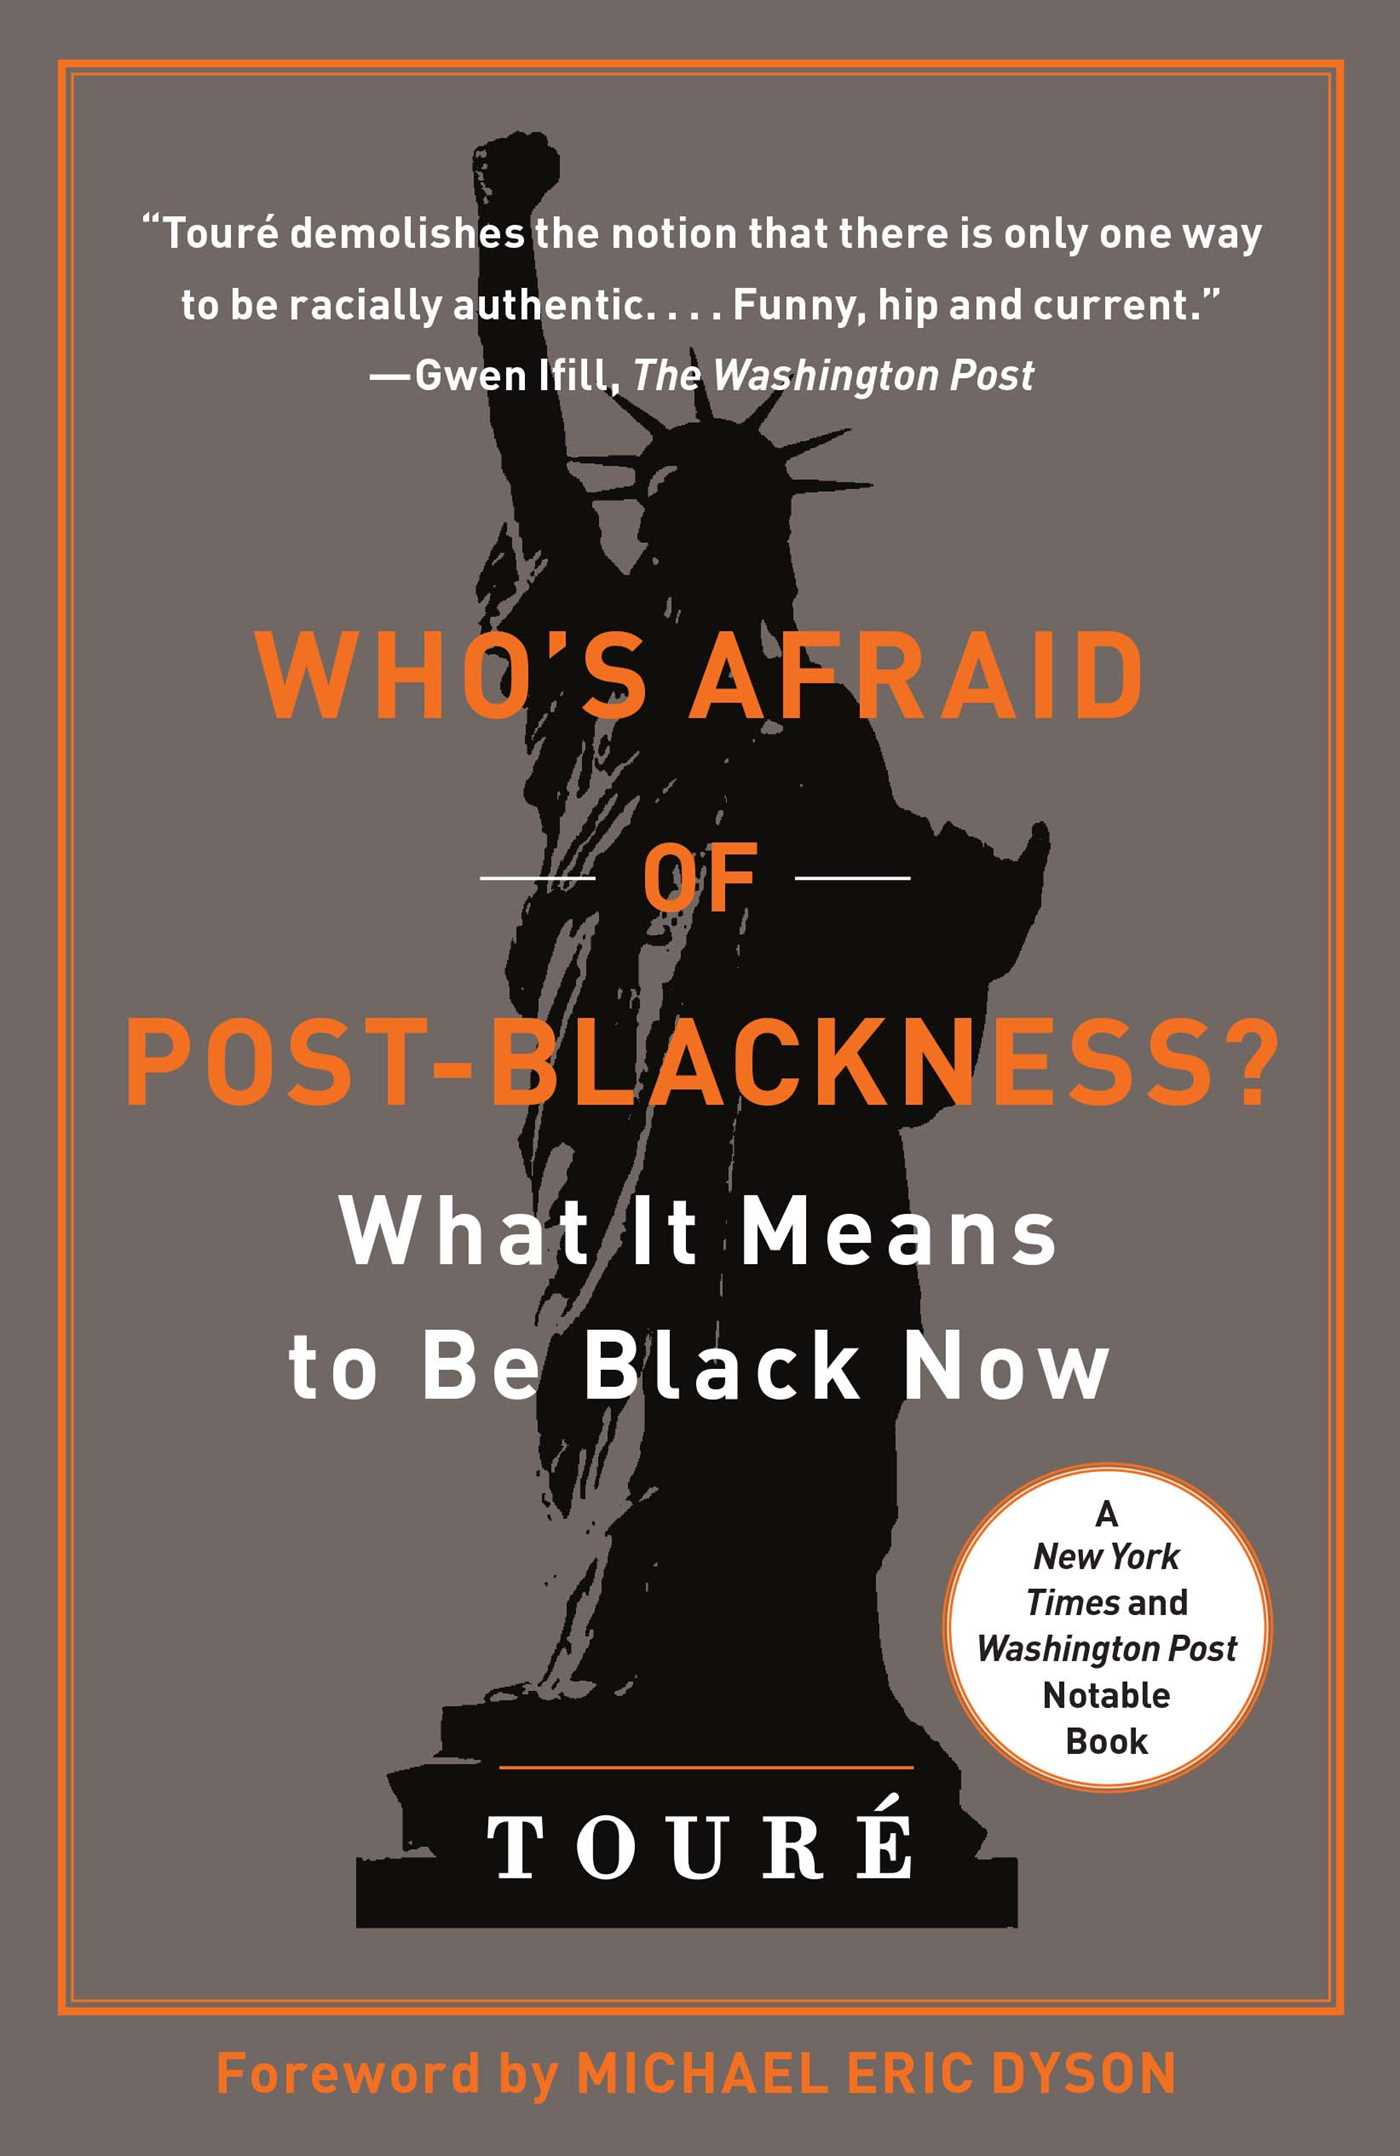 Who's Afraid of Post-Blackness?